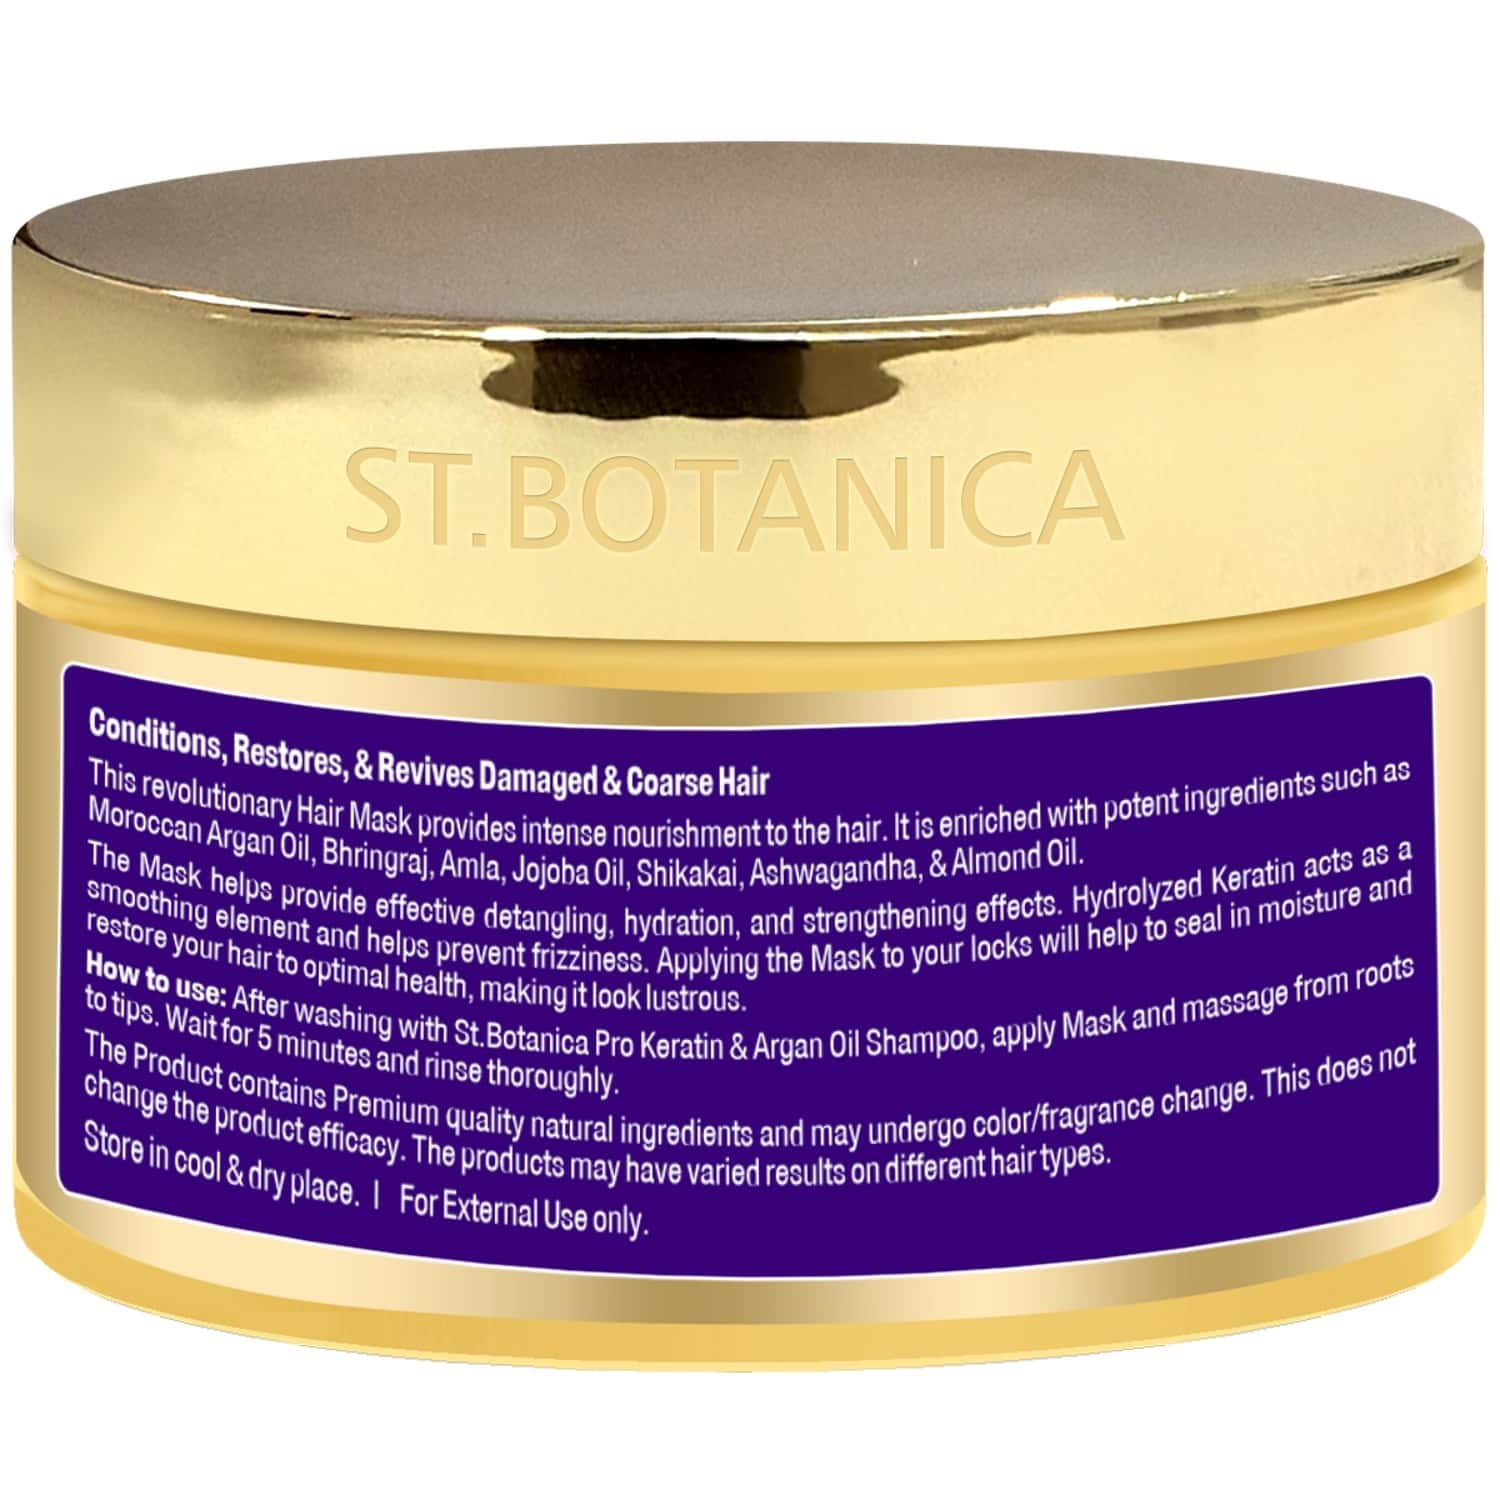 St.botanica Pro Keratin & Argan Oil Hair Mask - 200 Ml - Intensive Conditioning For Dry, Damaged, Color Treated Hair